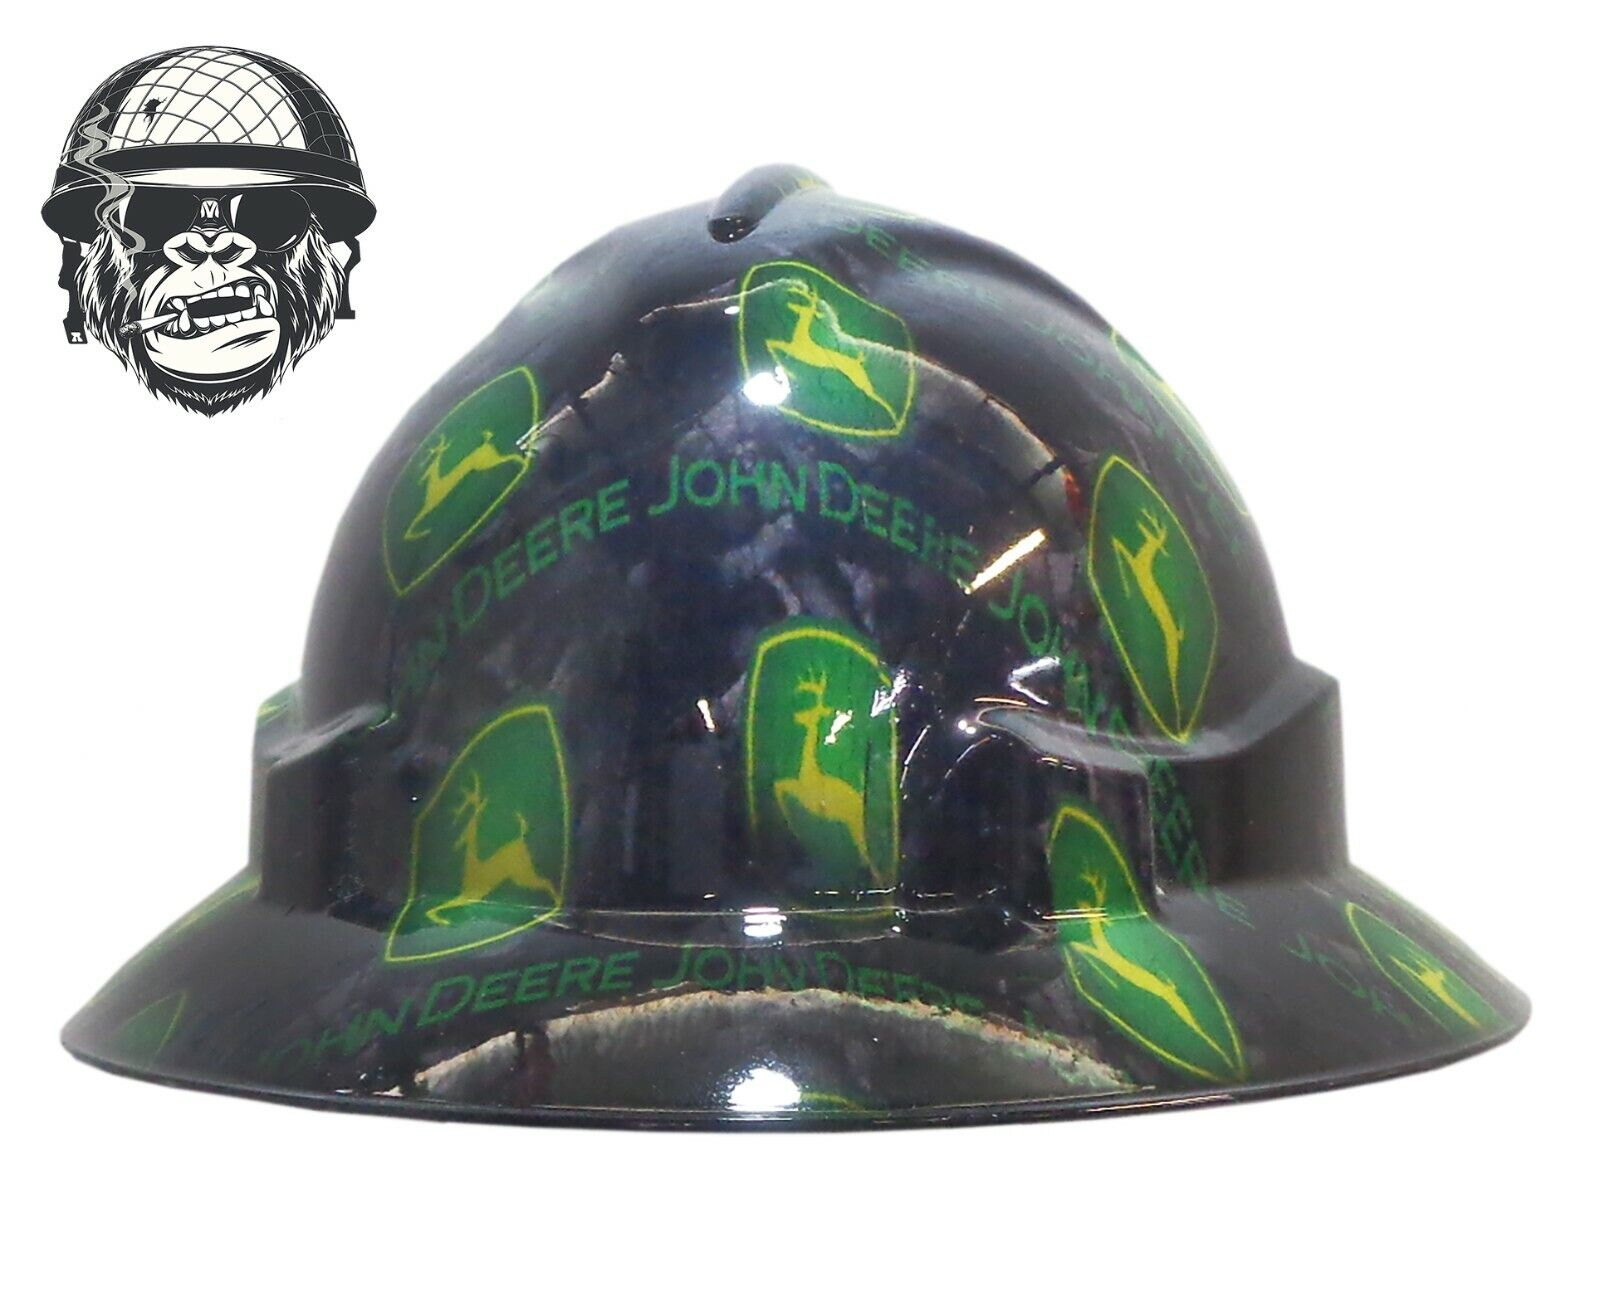 Custom Hydrographic Wide Brim Safety Hard Hat Tractor Farm JOHN DEERE WIDE